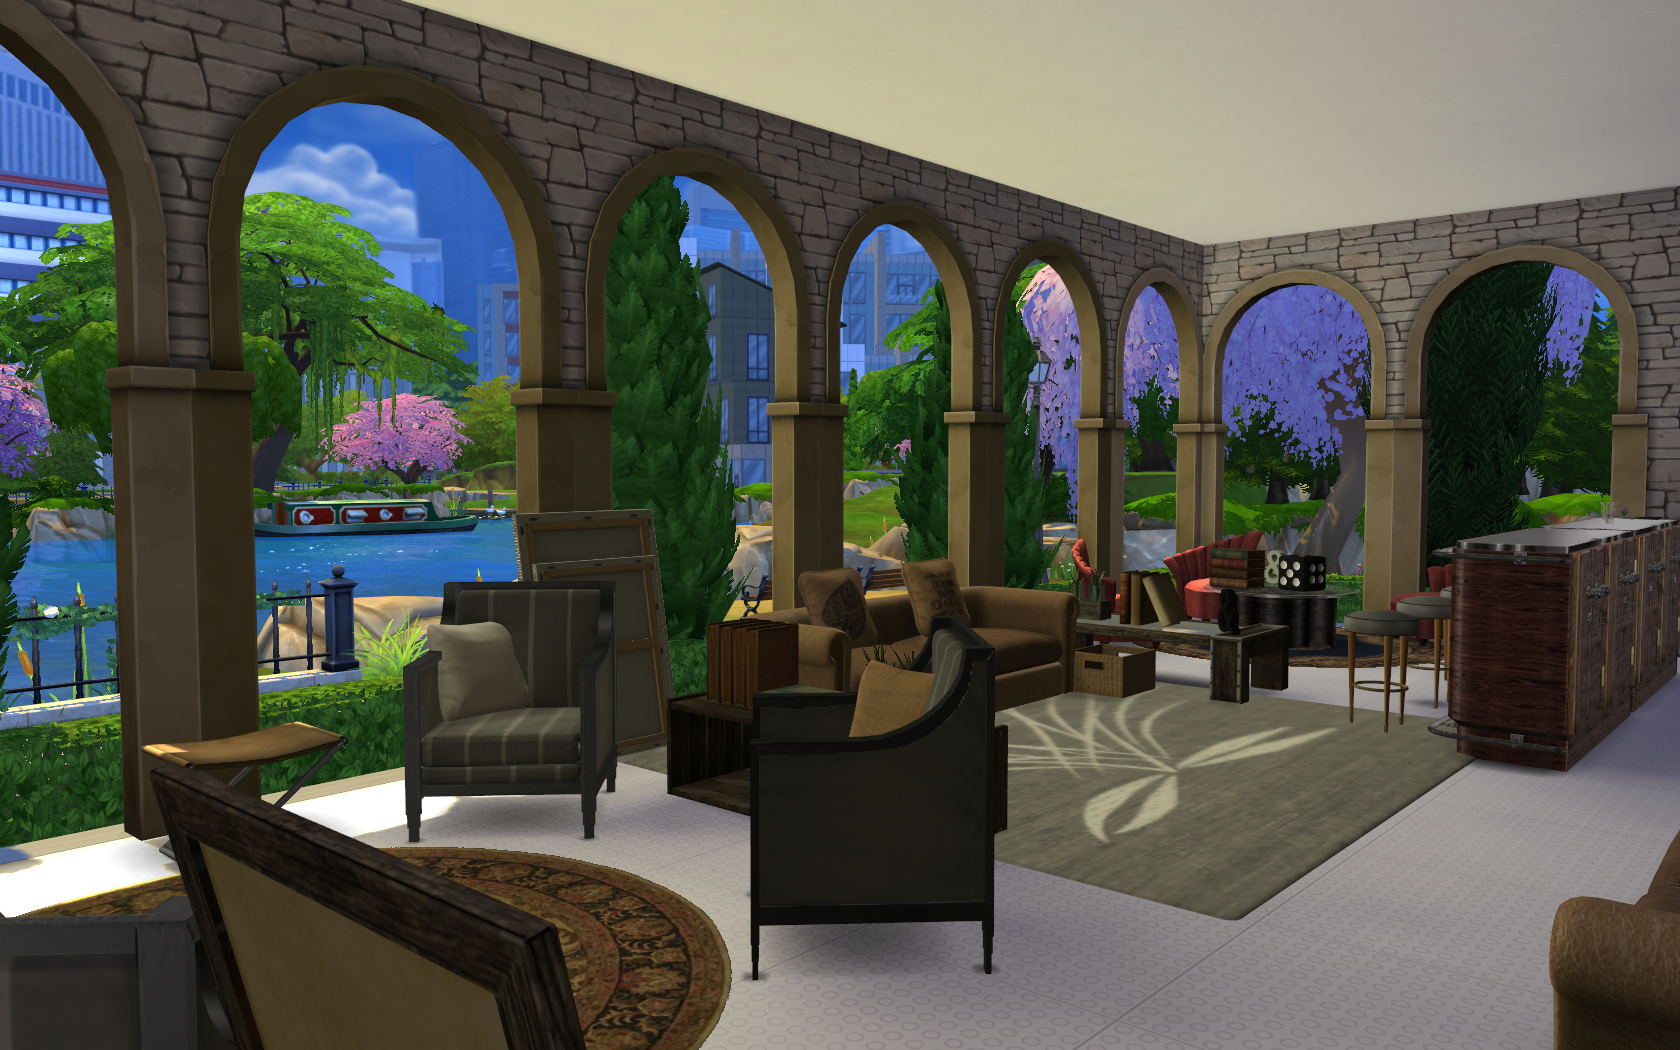 THE BACHELOR OF NEWCREST ~ BY MEESHELBY 27959264543_156b2a1e83_o